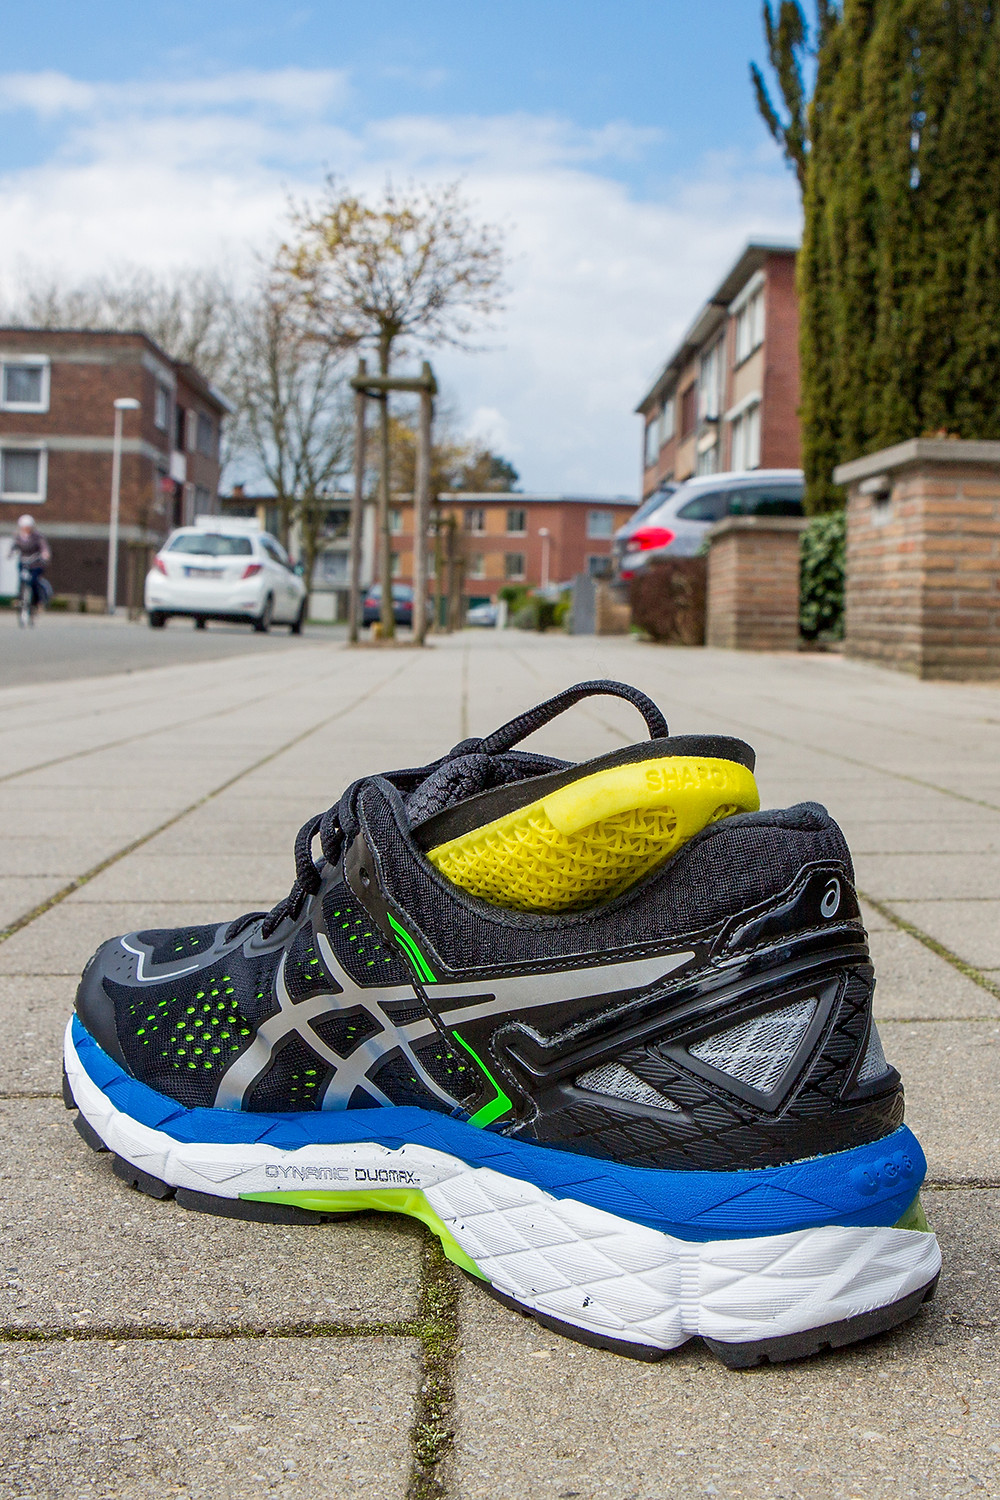 Orthotics for shoes